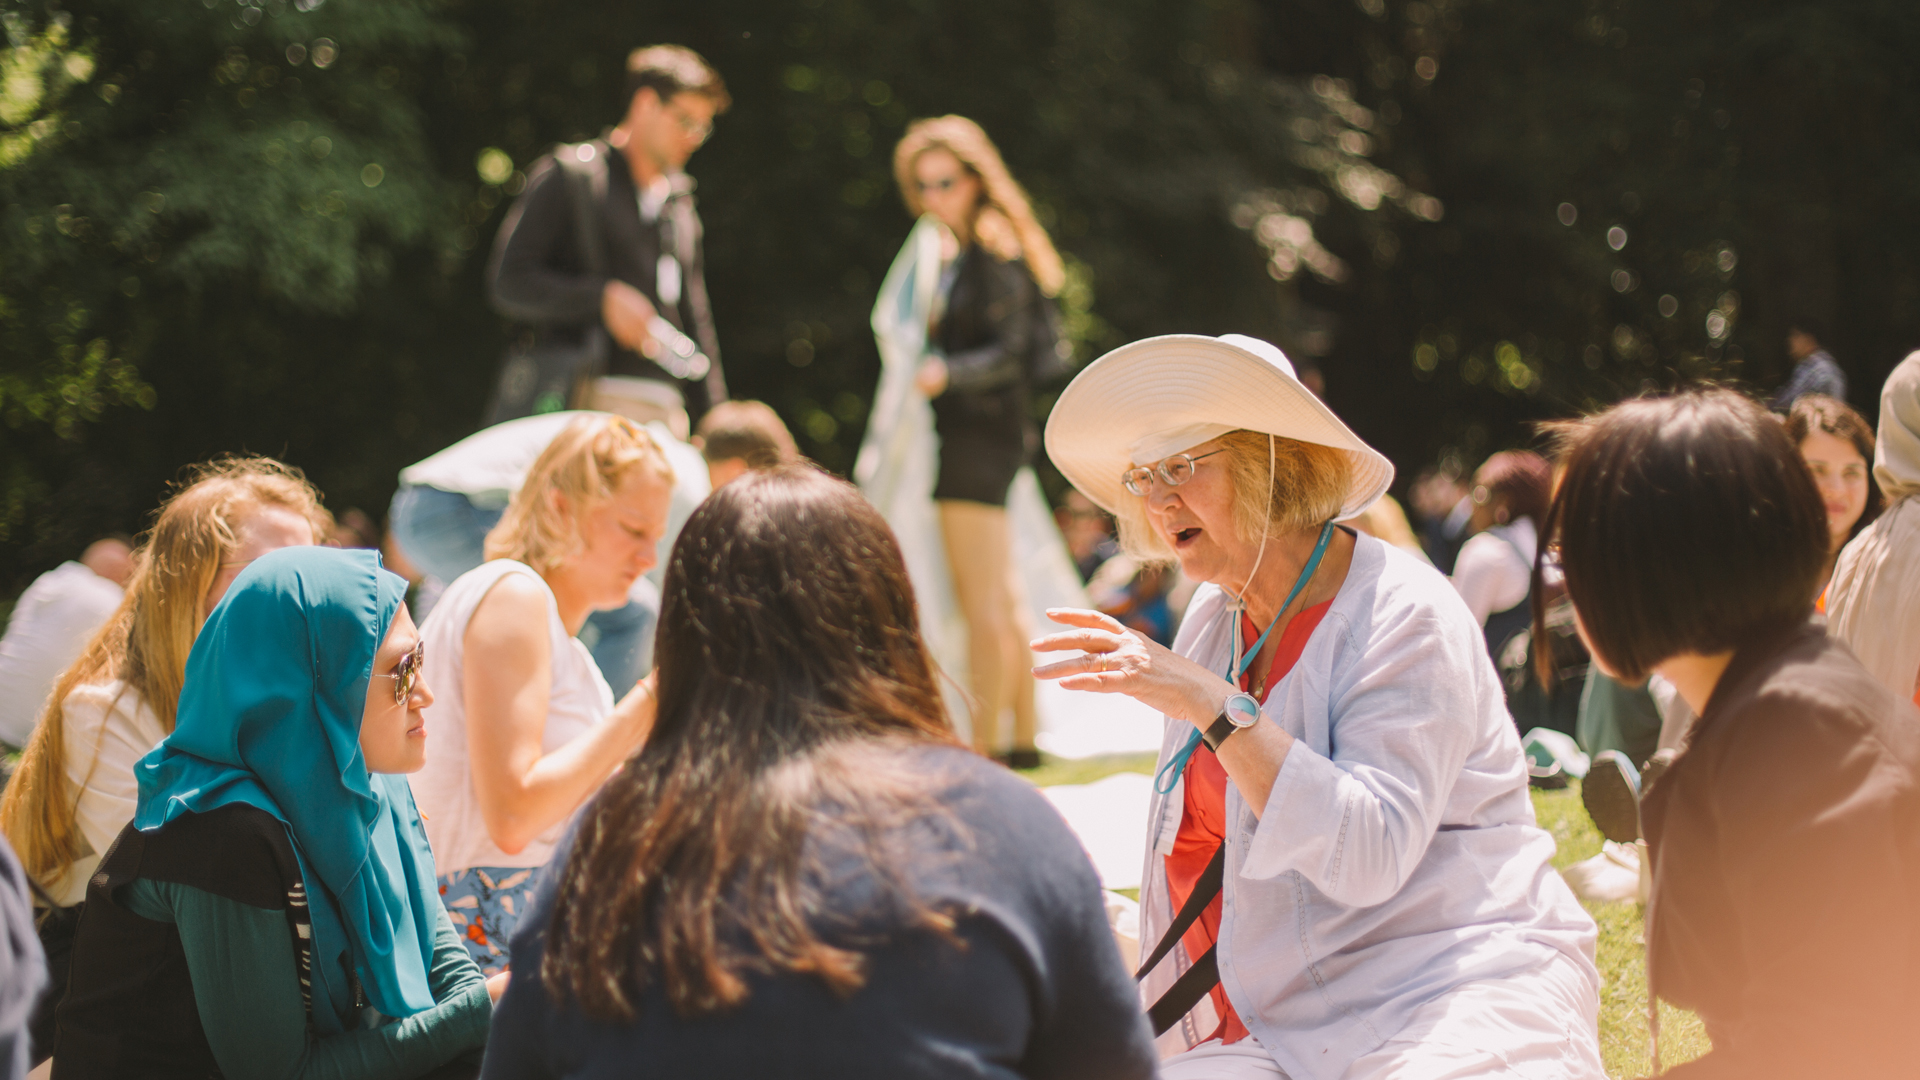 Elizabeth Blackburn, initiator of the LIndau Guidelines on the island Mainau during closing day of the 68th Lindau Nobel Laureate Meeting, discussing with young scientists